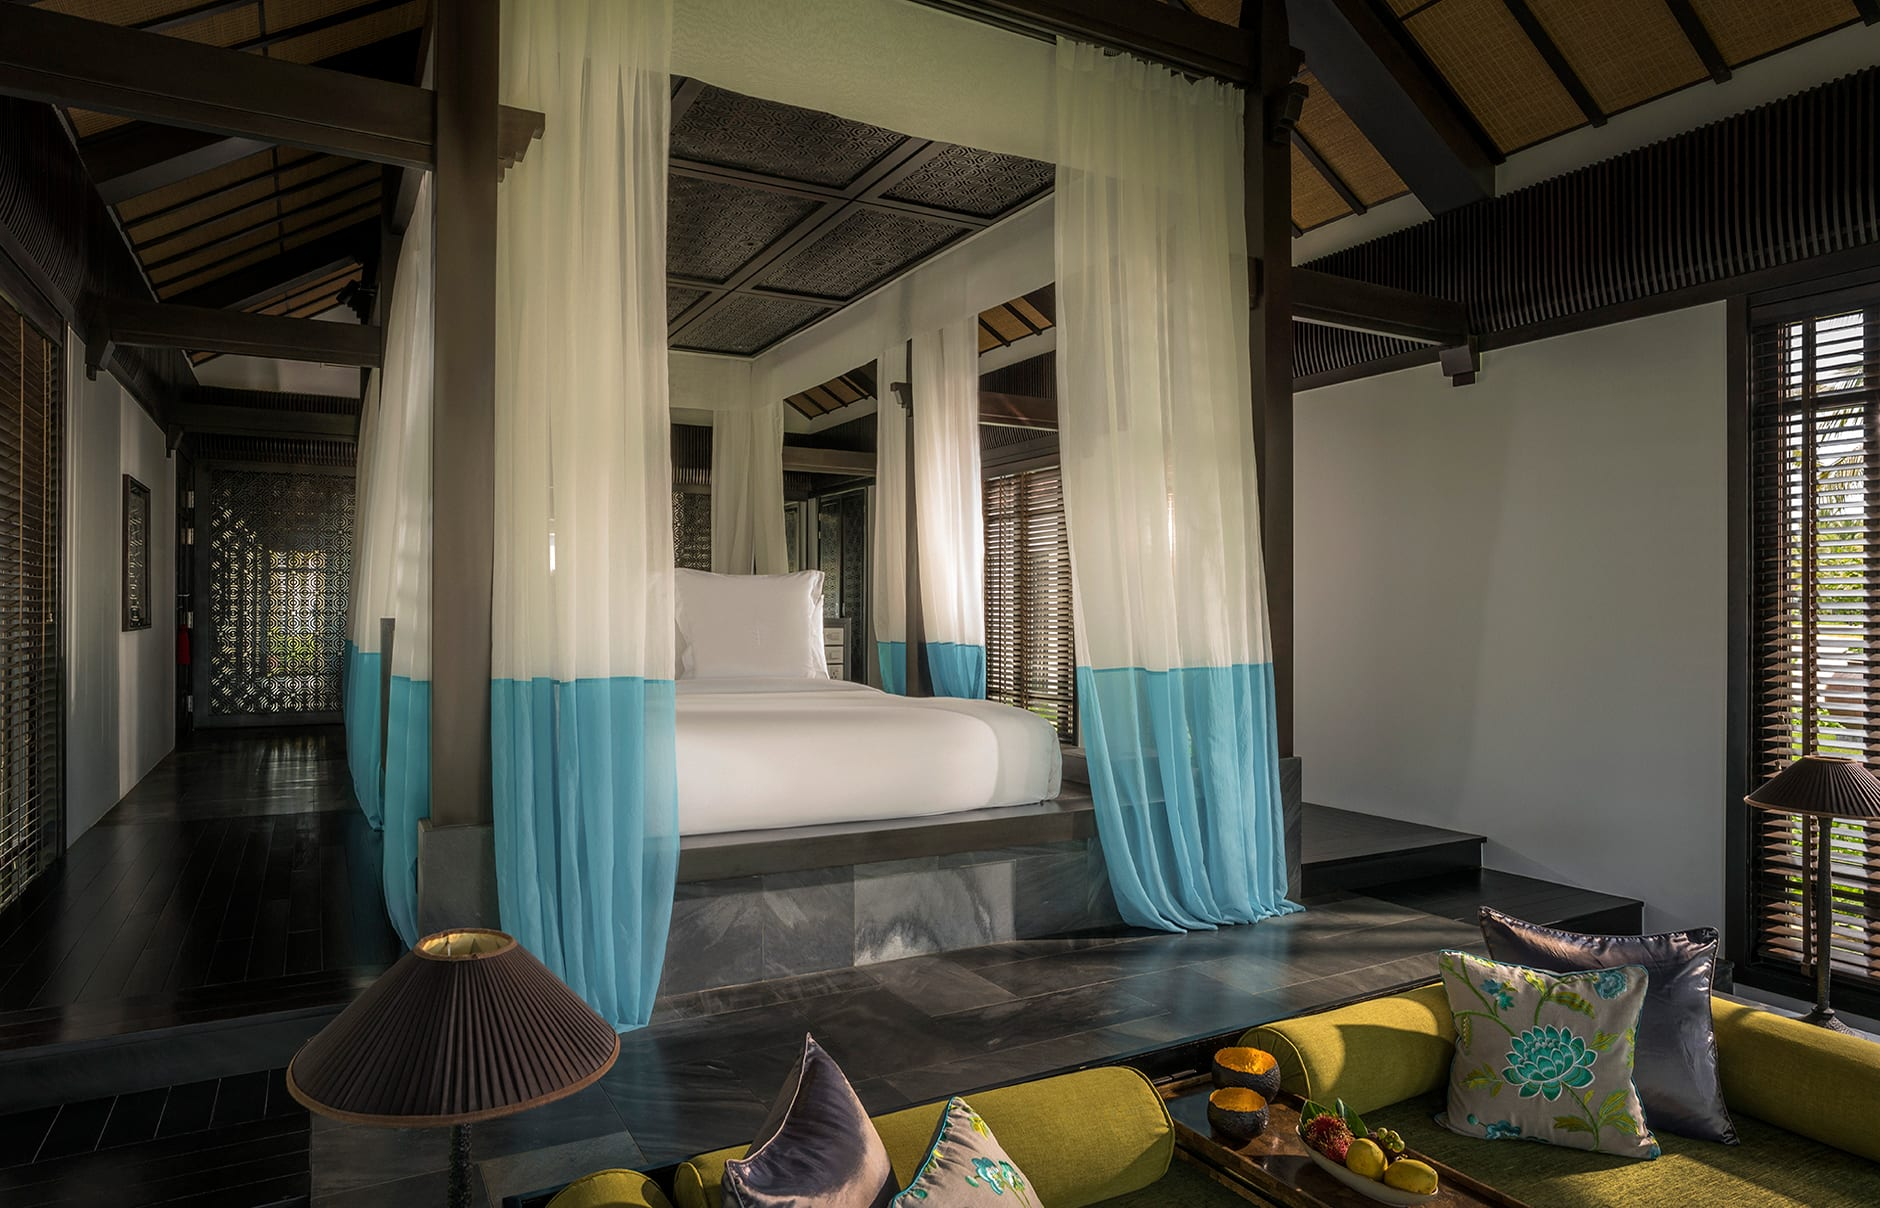 Four Seasons Resort The Nam Hai, Hoi An, Vietnam. Hotel Review by TravelPlusStyle. Photo © Four Seasons Hotels